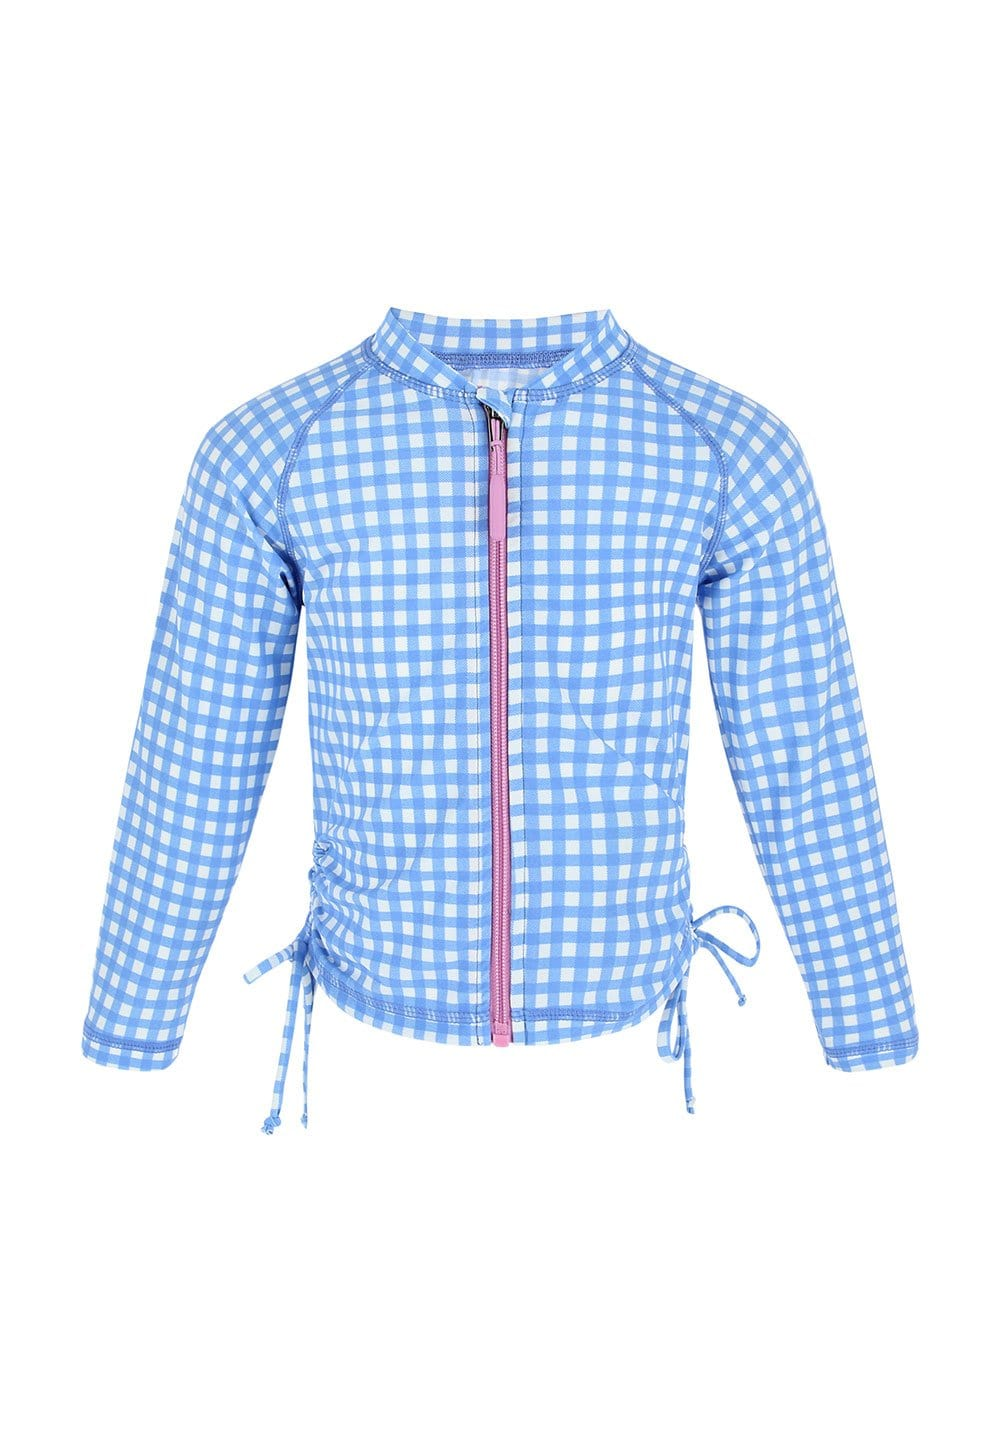 FUNFIT UPF50+ Junior Rash Top (Unisex) in Gingham Summer Print